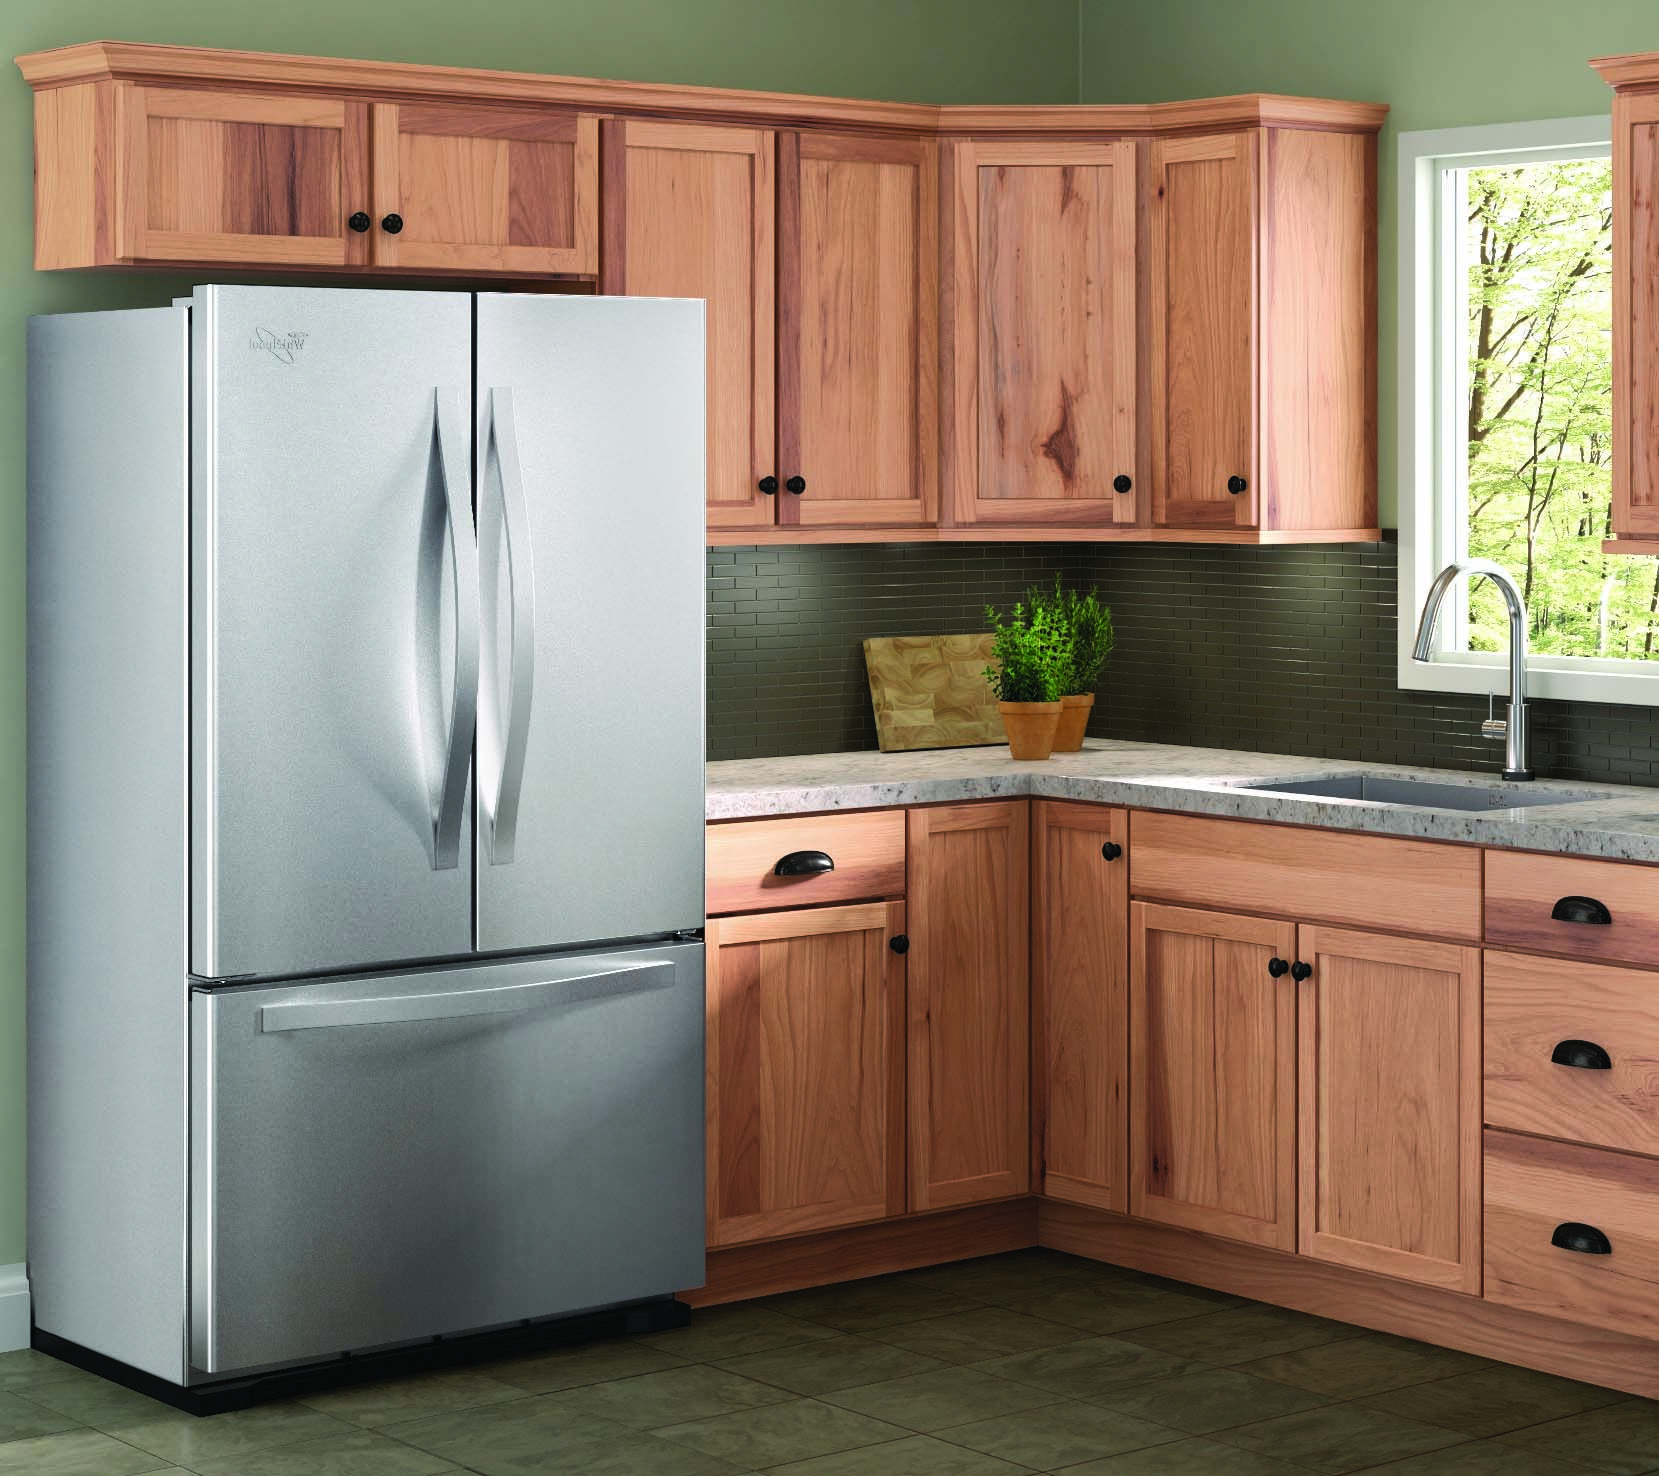 Cabinetry That Just Makes Sense At An Everyday Value Cardell Concepts Cabinetry Gives You A Completely Fresh Selection Stock Cabinets House Rental Cabinetry